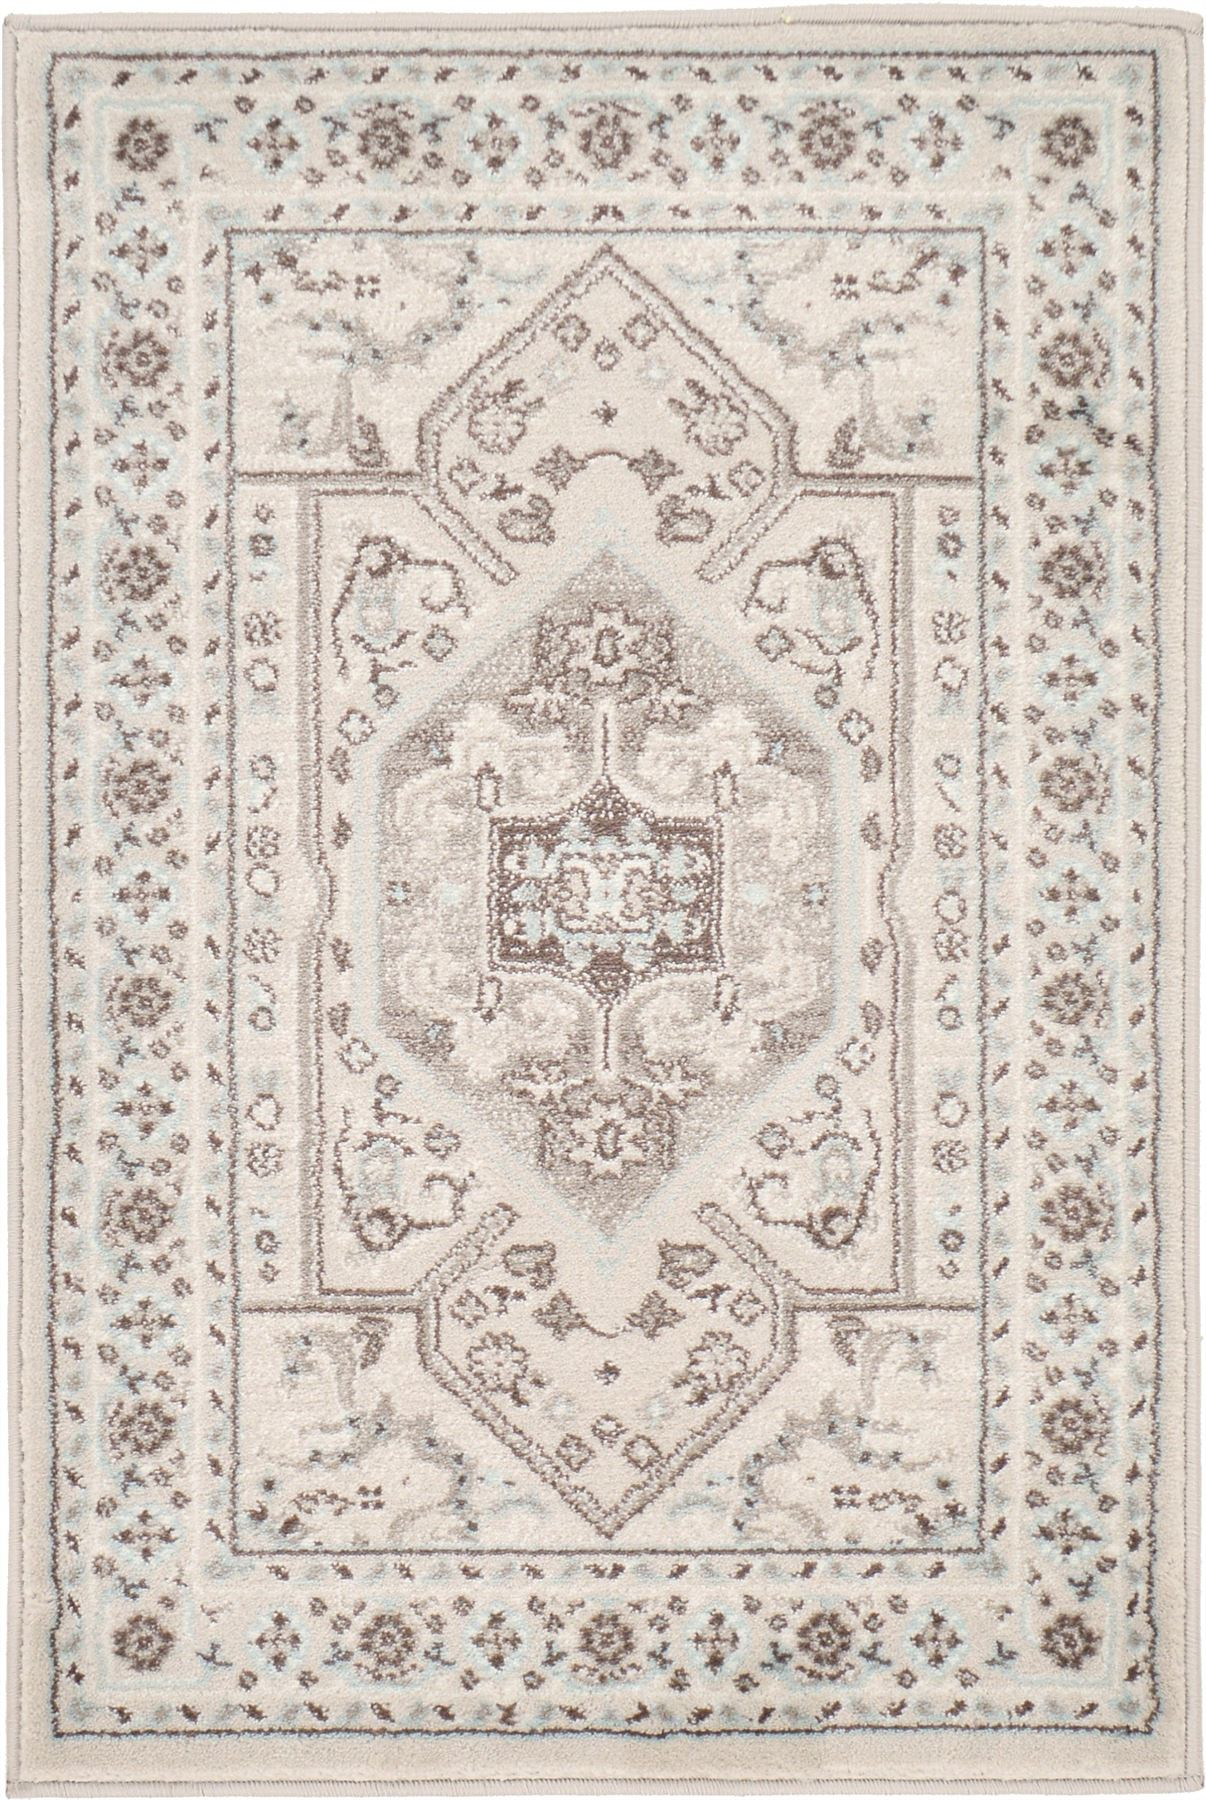 Traditional rug oriental area rug persian style rugs for Area rug sizes